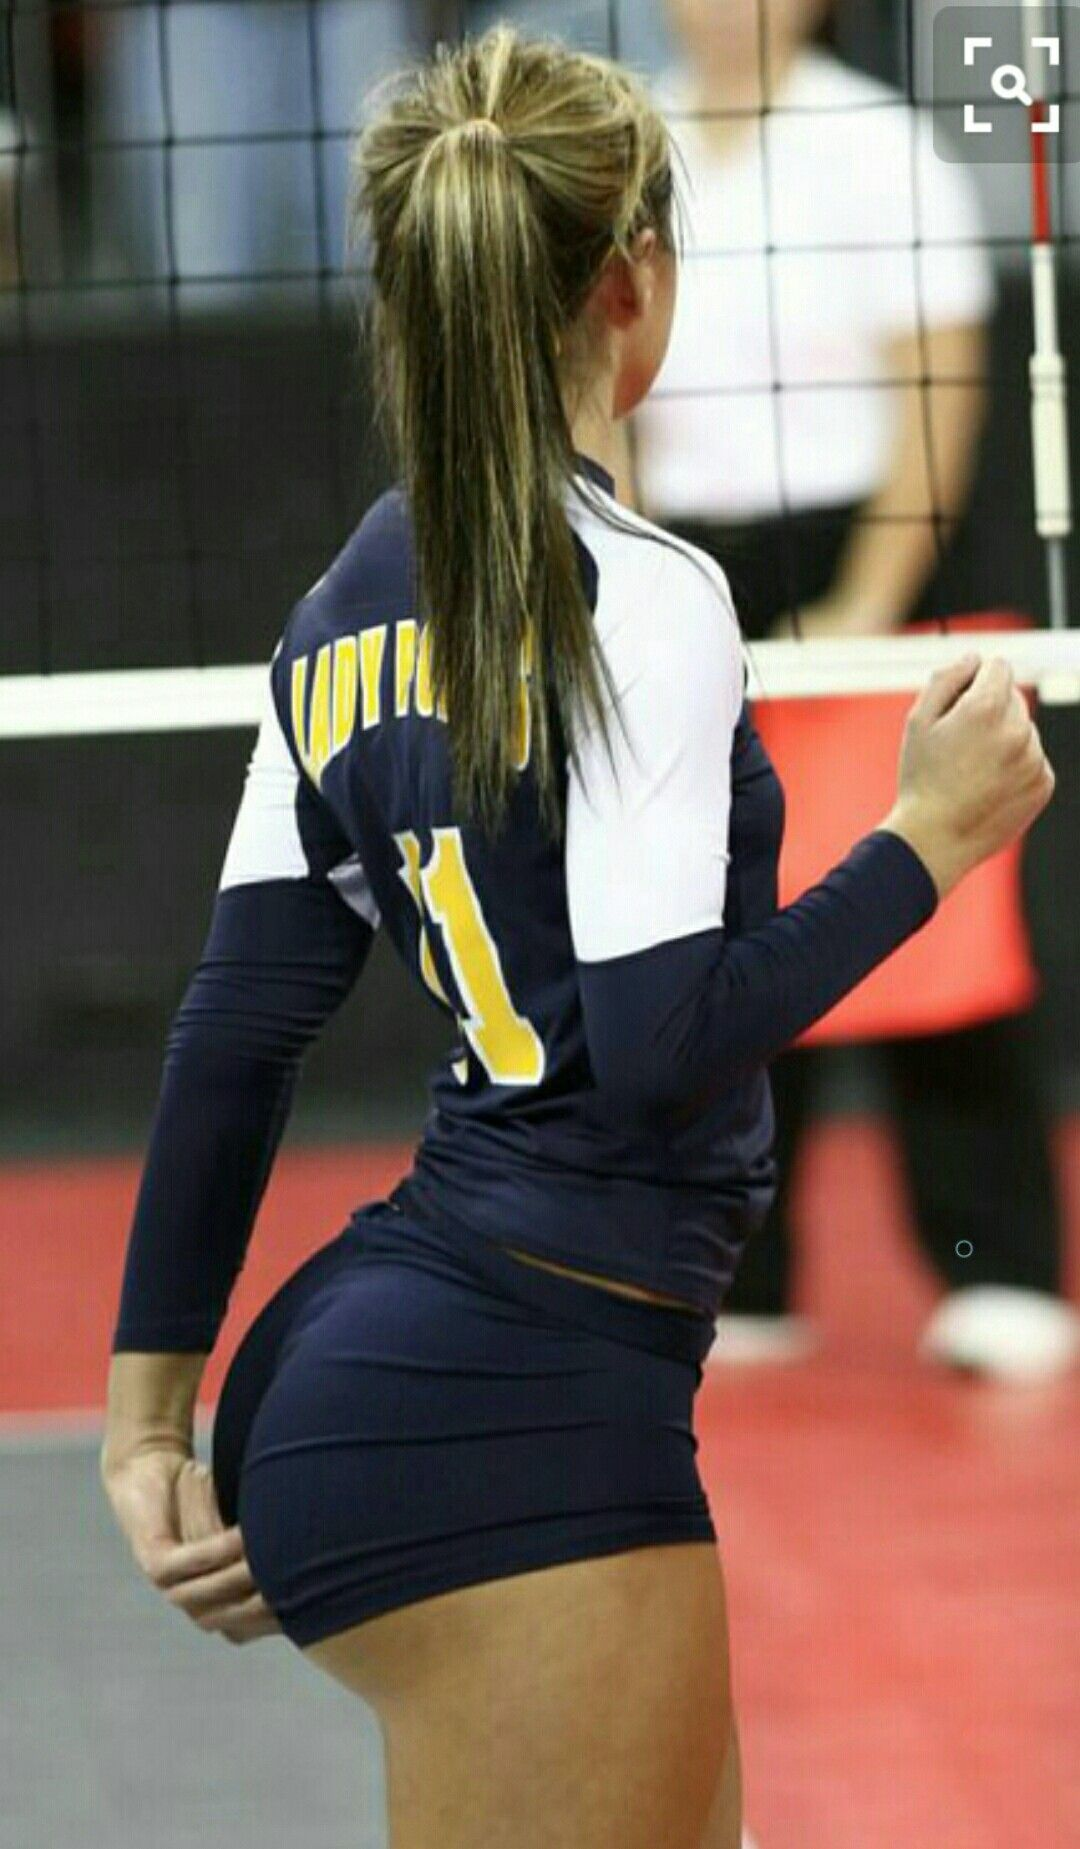 girl-young-female-volley-ball-porn-drunk-college